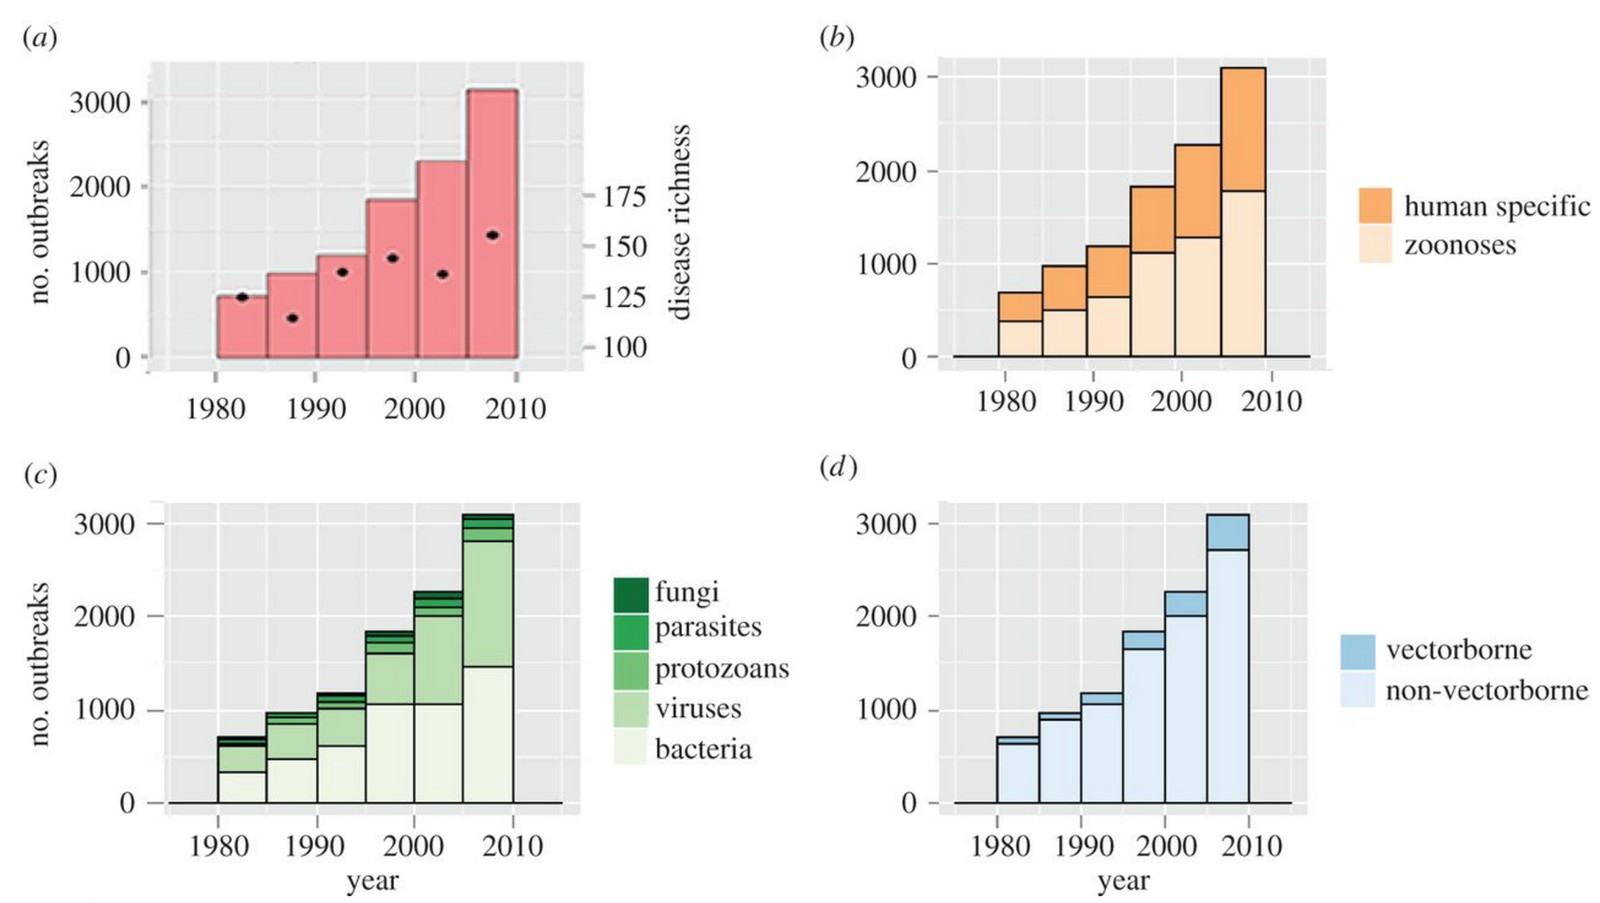 The Royal Society The Global Number Of Human Infectious Disease Outbreaks And Richness Of Causal Diseases From 1980 To 2010 Outbreak Records Are Plotted